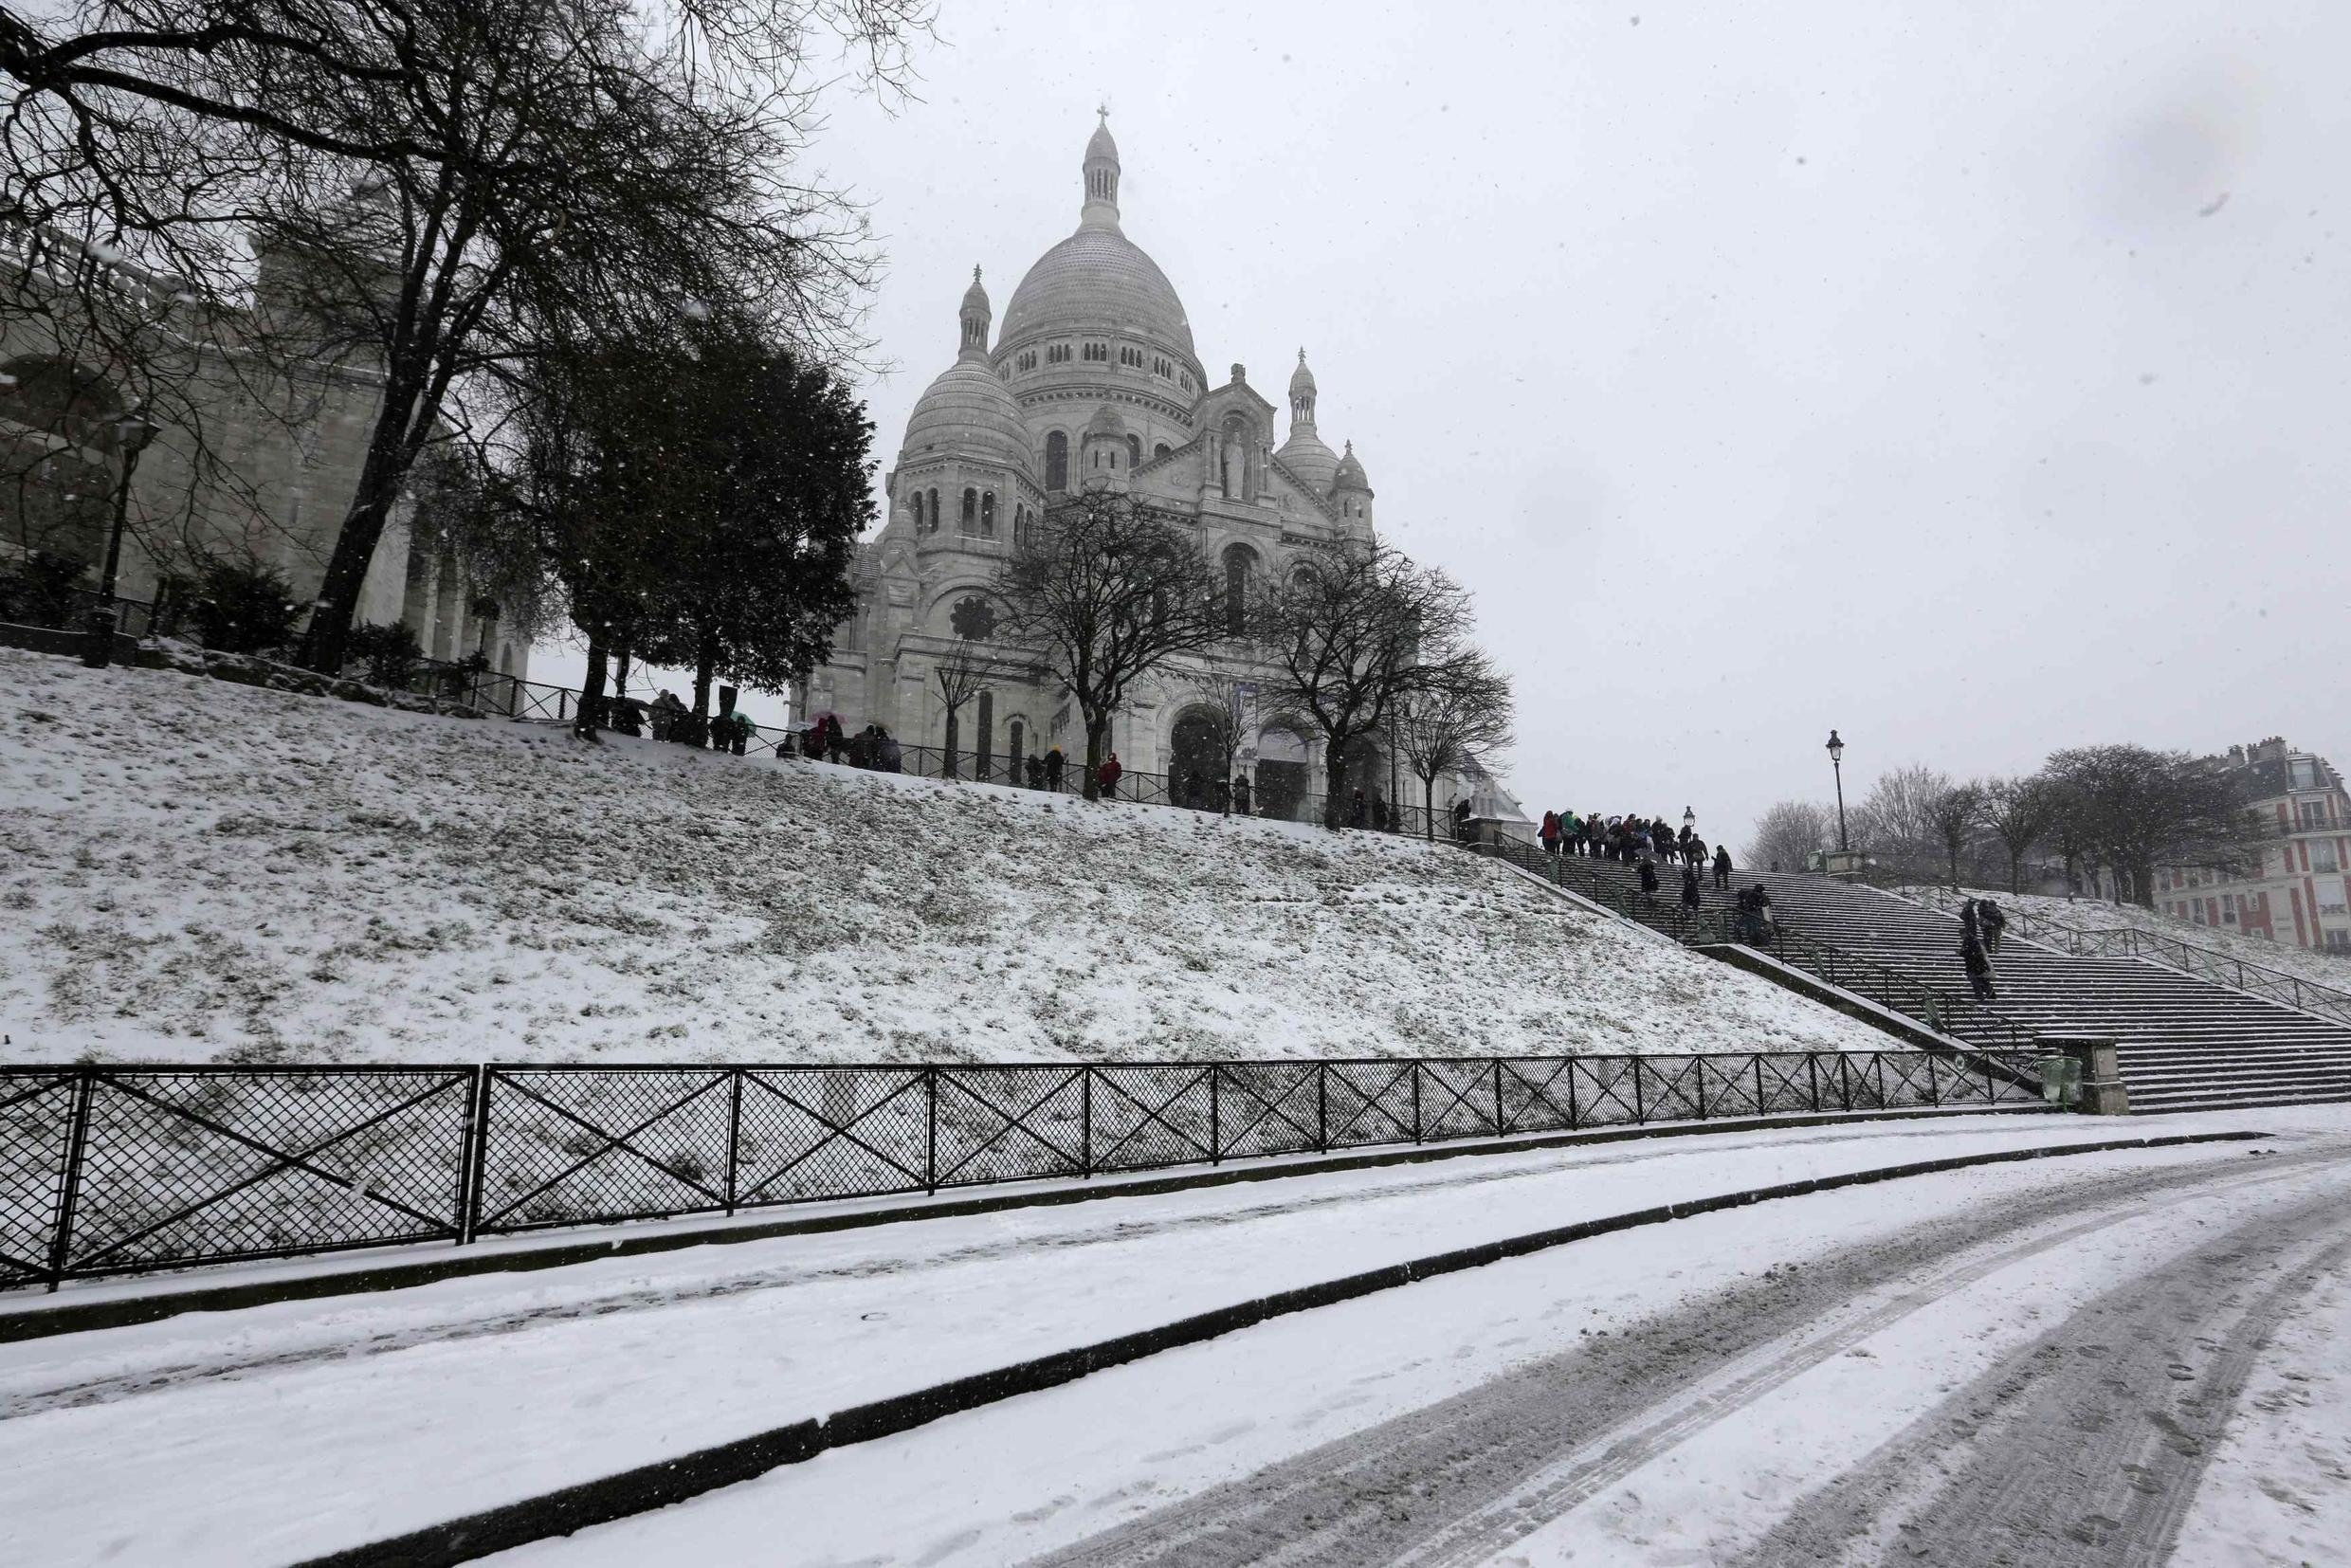 The Sacré Coeur in Paris is visited by more tourists than the Louvre